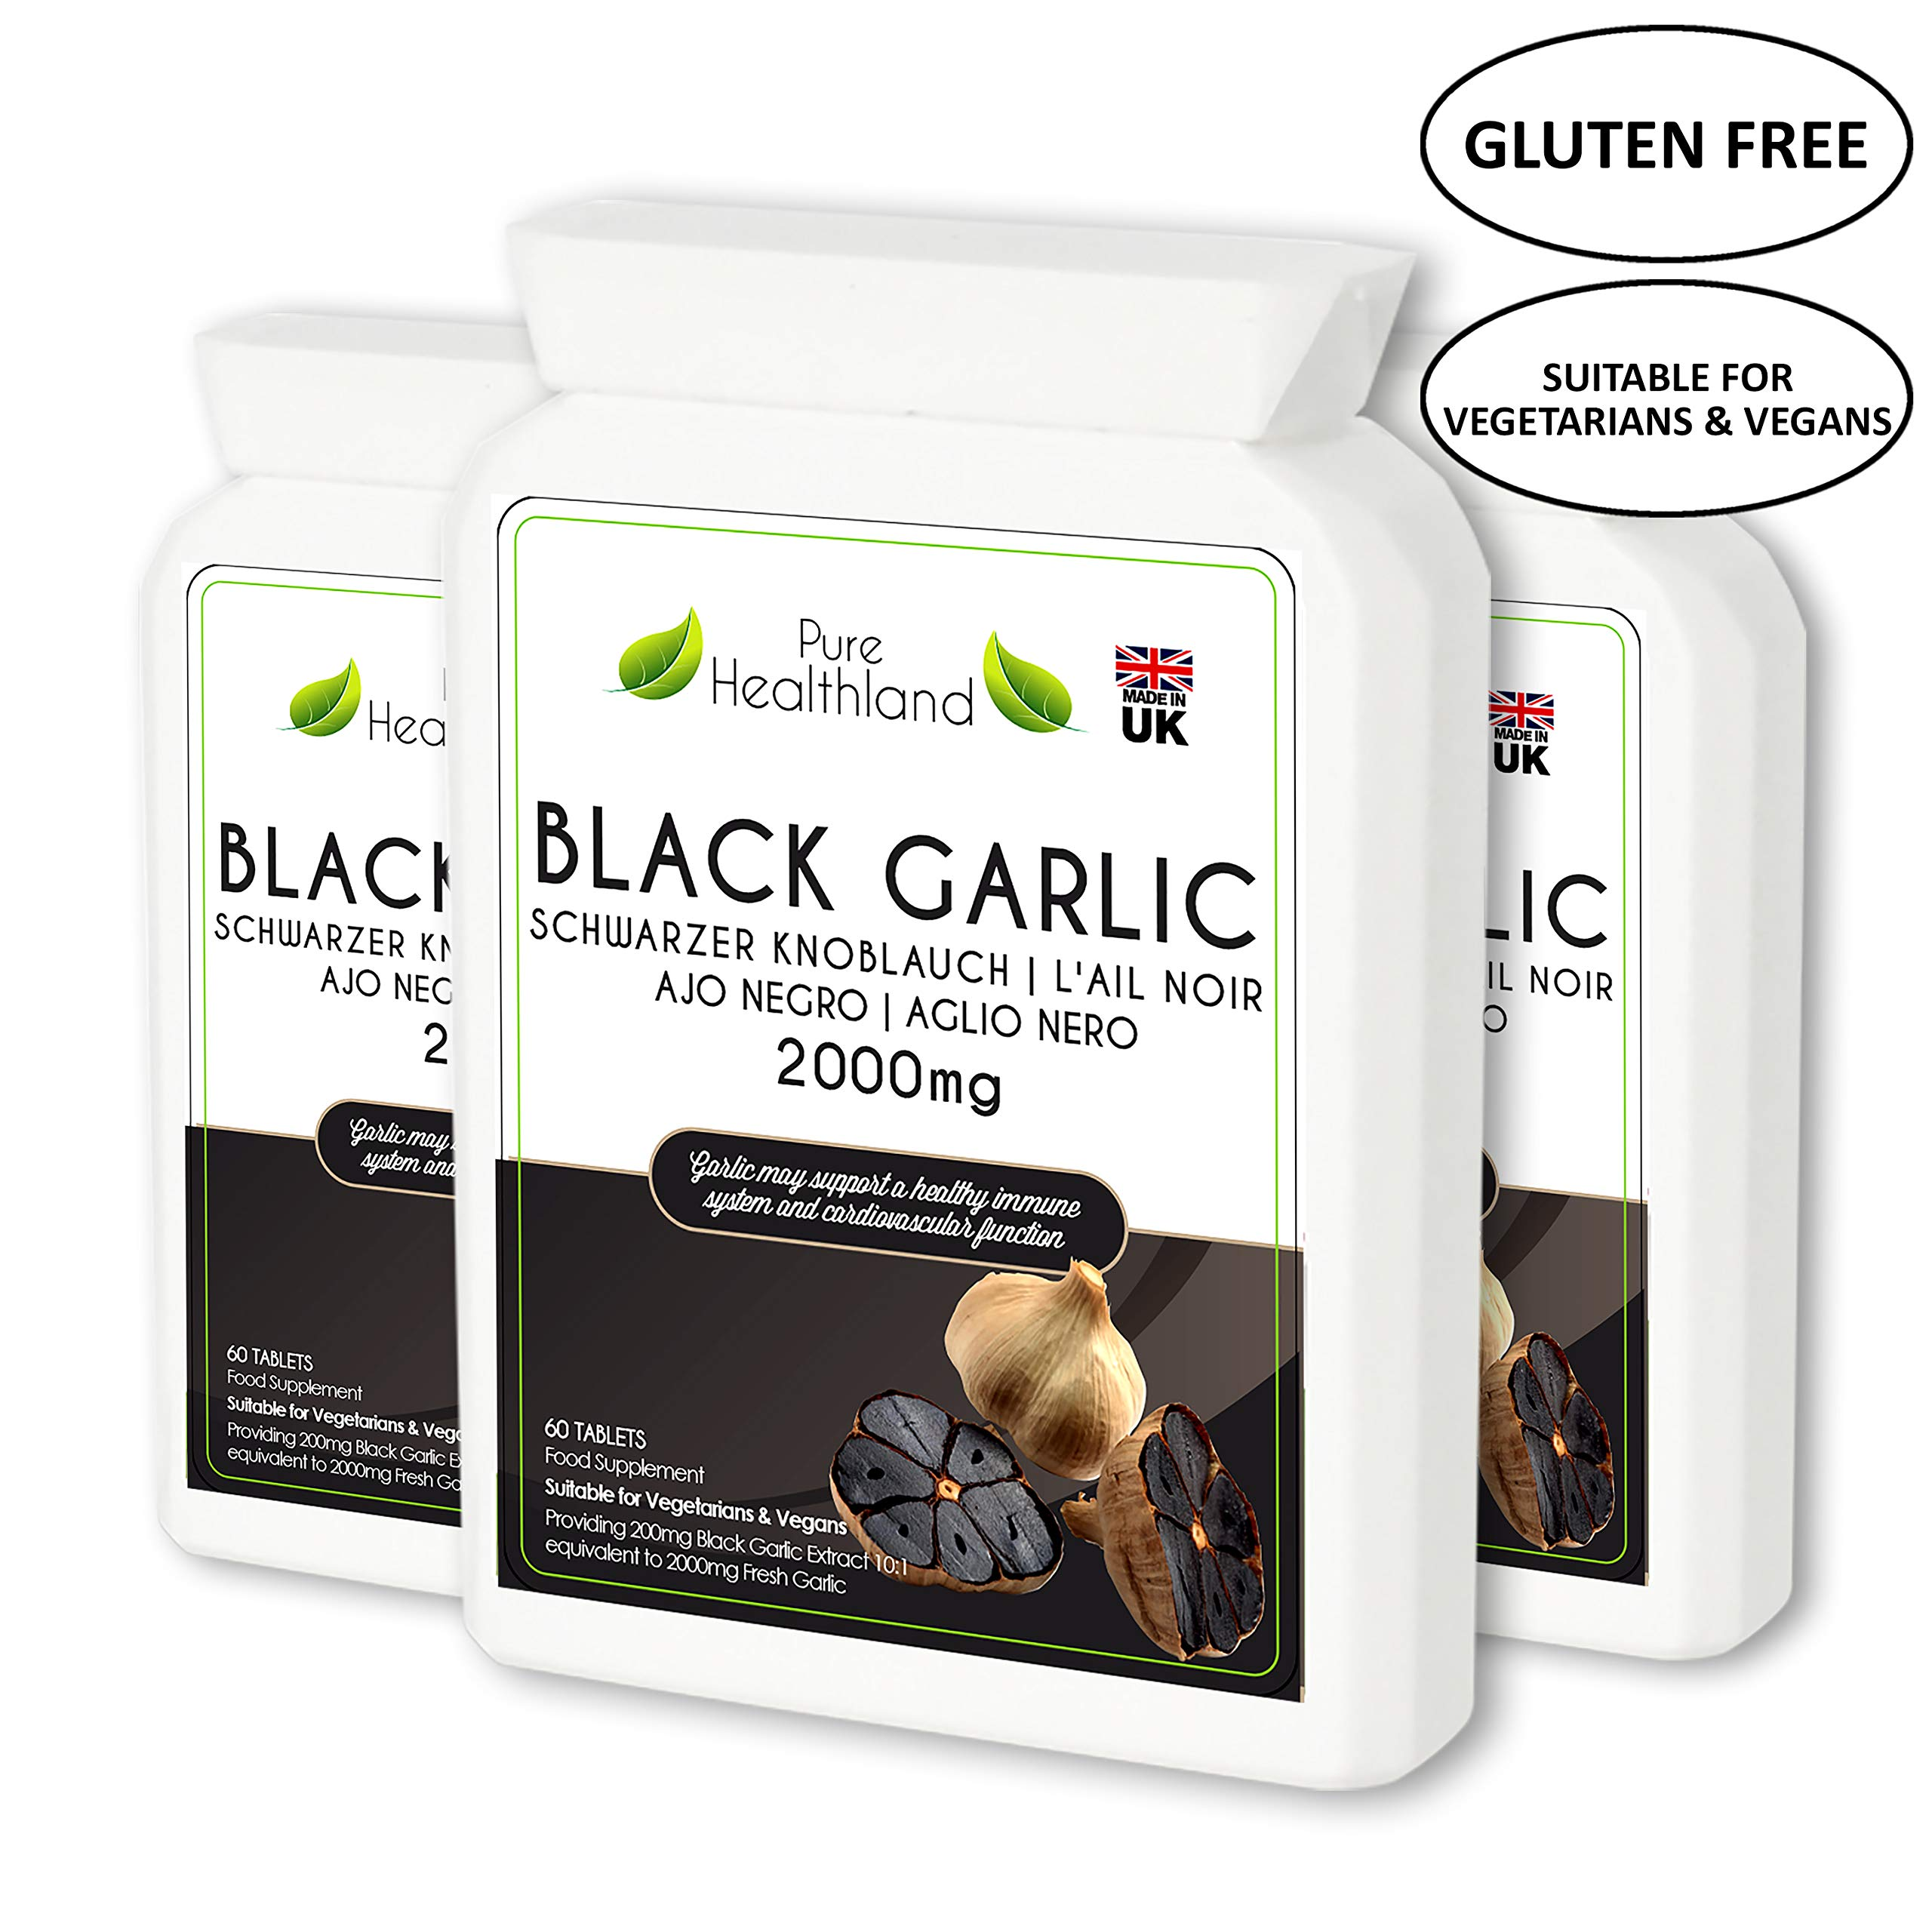 Gluten Free ODORLESS Black Garlic Supplement Tablets for Men & Women. High Potency Equal to 2000mg Fresh Garlic Bulbs. Suitable for Vegan and Vegetarian. 3 Bottles